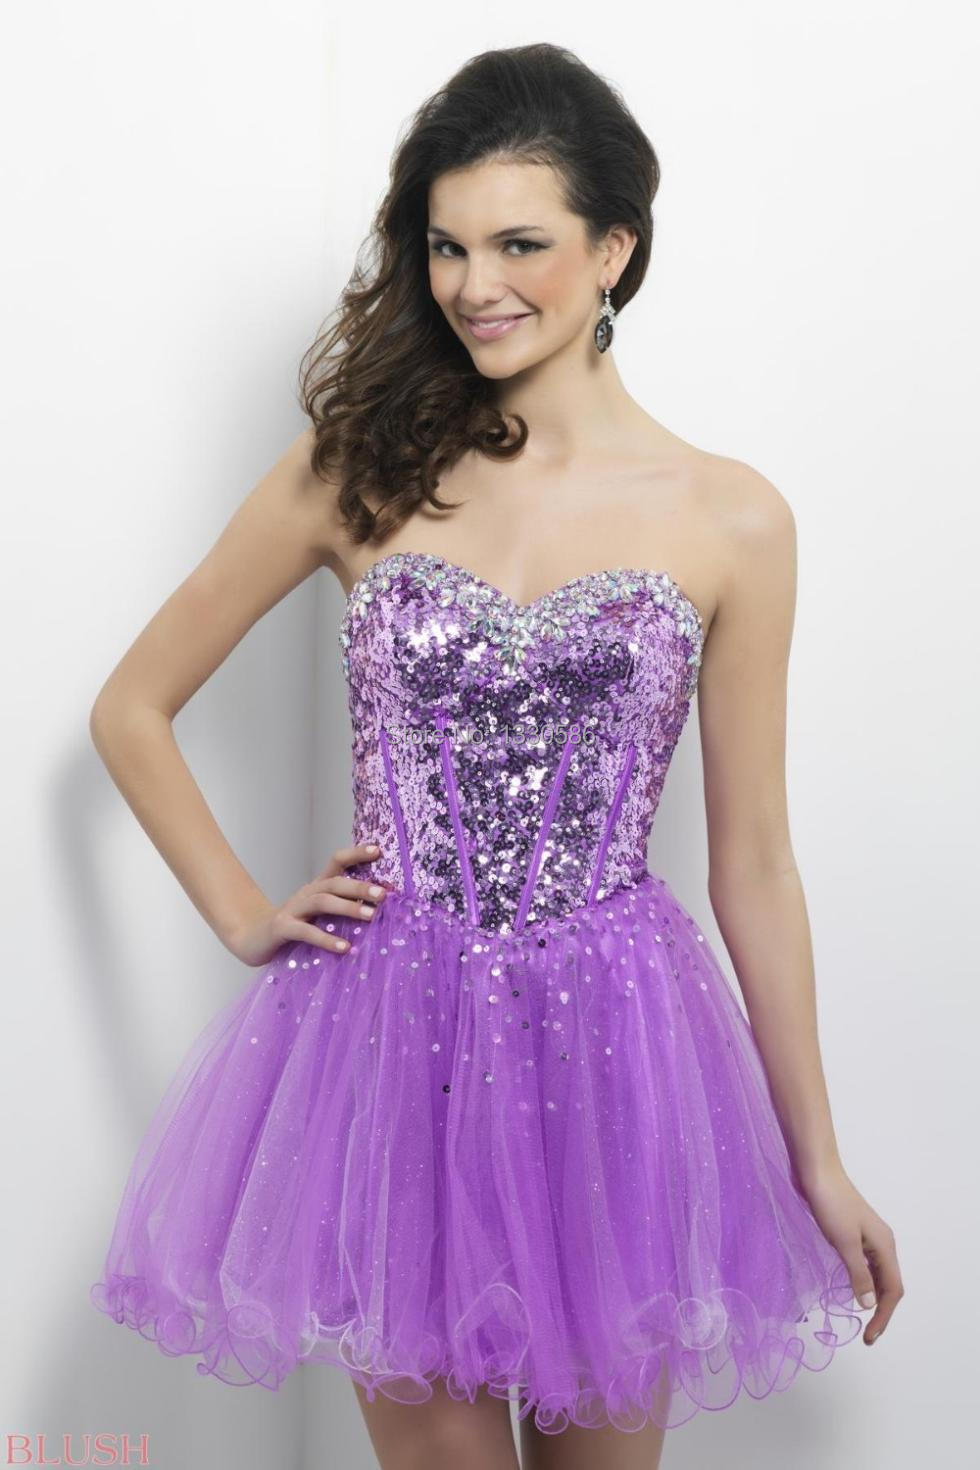 Lavender Homecoming Dresses - KD Dress